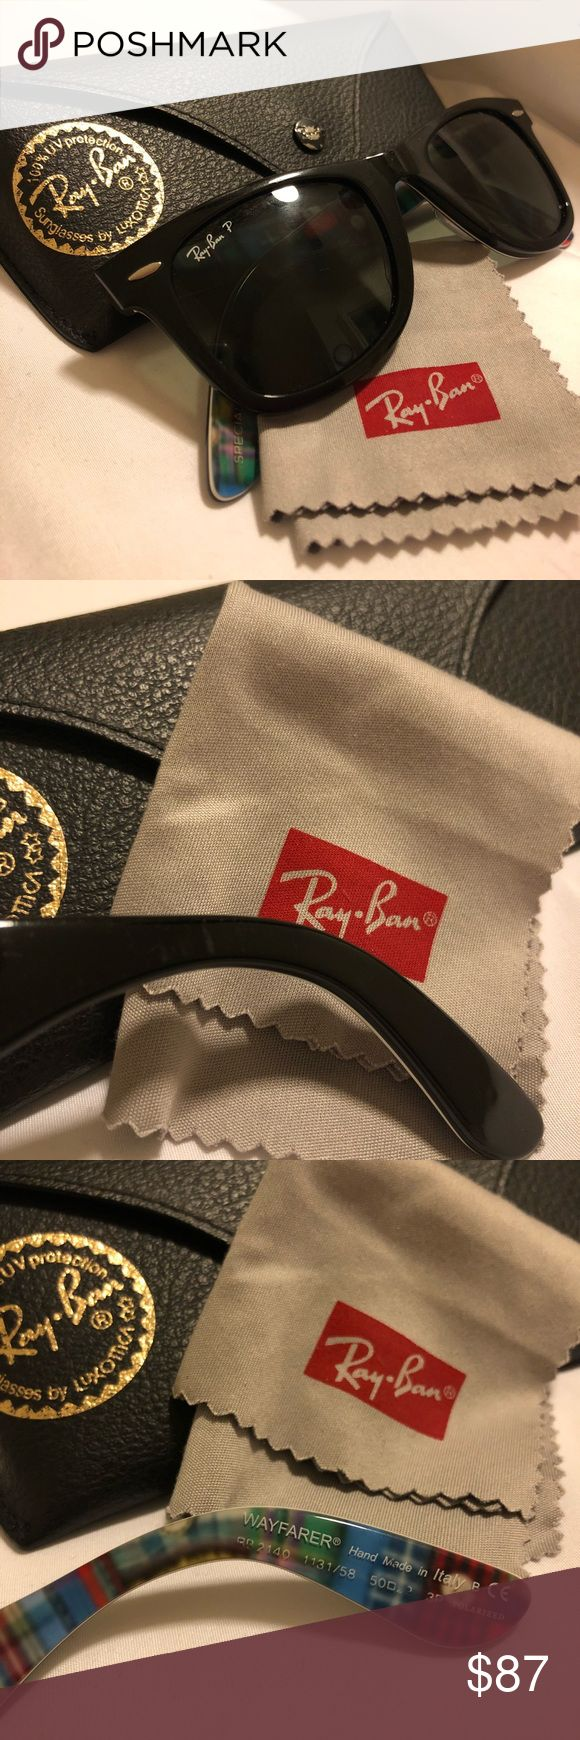 Ray Ban Wayfarer Polarized LIKE NEW! Original Special Series #10 Wayfarer Polarized Ray Bans. Case, cloth and care book included!! Almost perfect condition with a few scratches shown below.   You'll love these! 😊   Size: 11 31 58 Ray-Ban Accessories Glasses